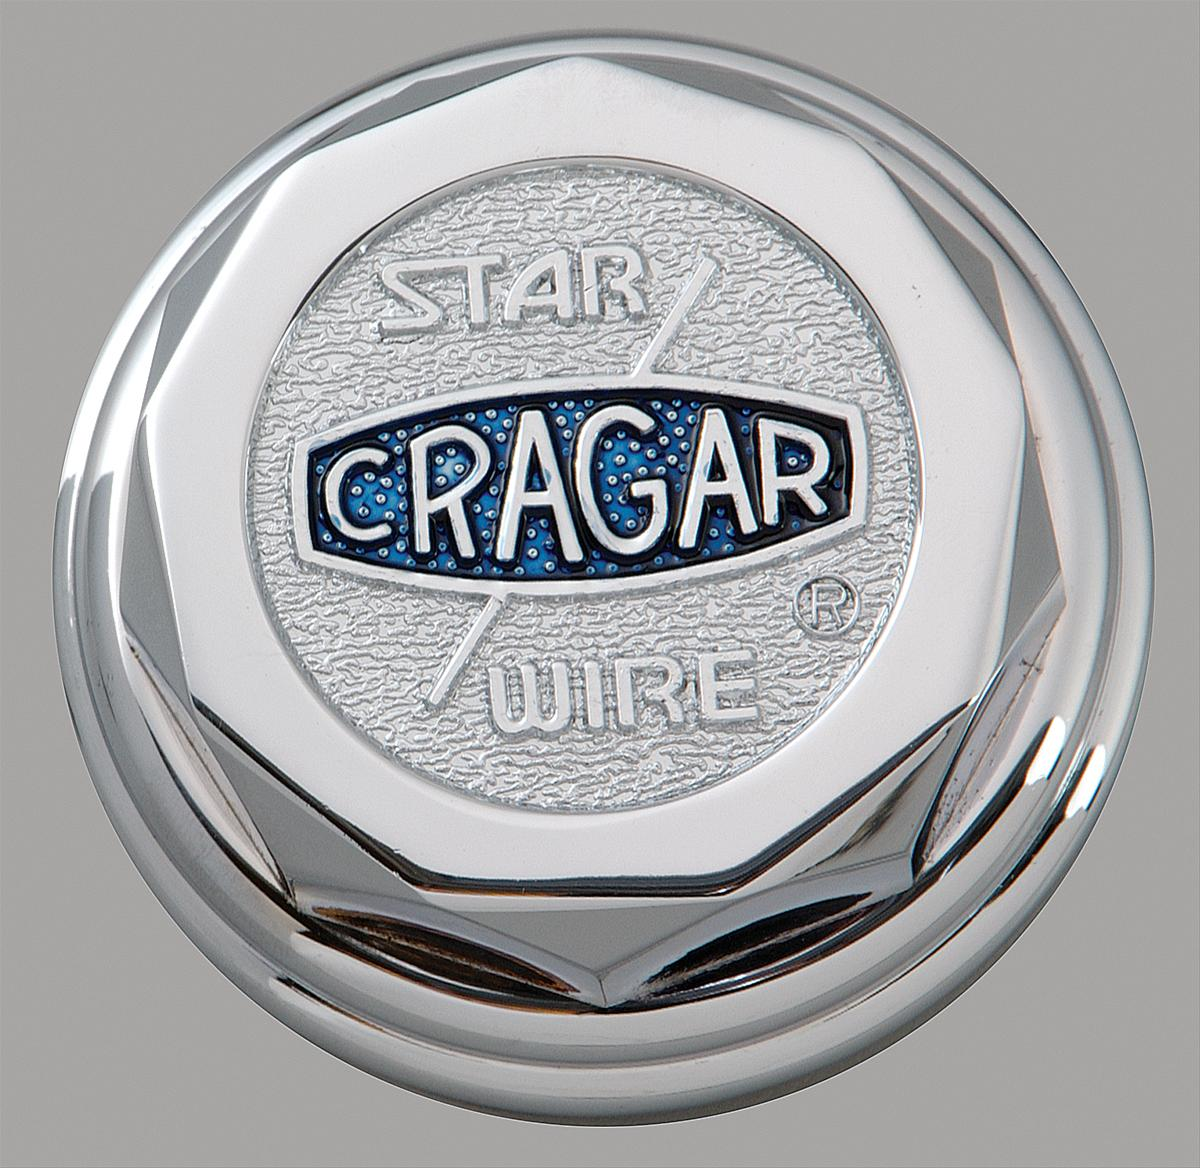 Cragar Wheel Center Caps 6026115 - Free Shipping on Orders Over $99 ...